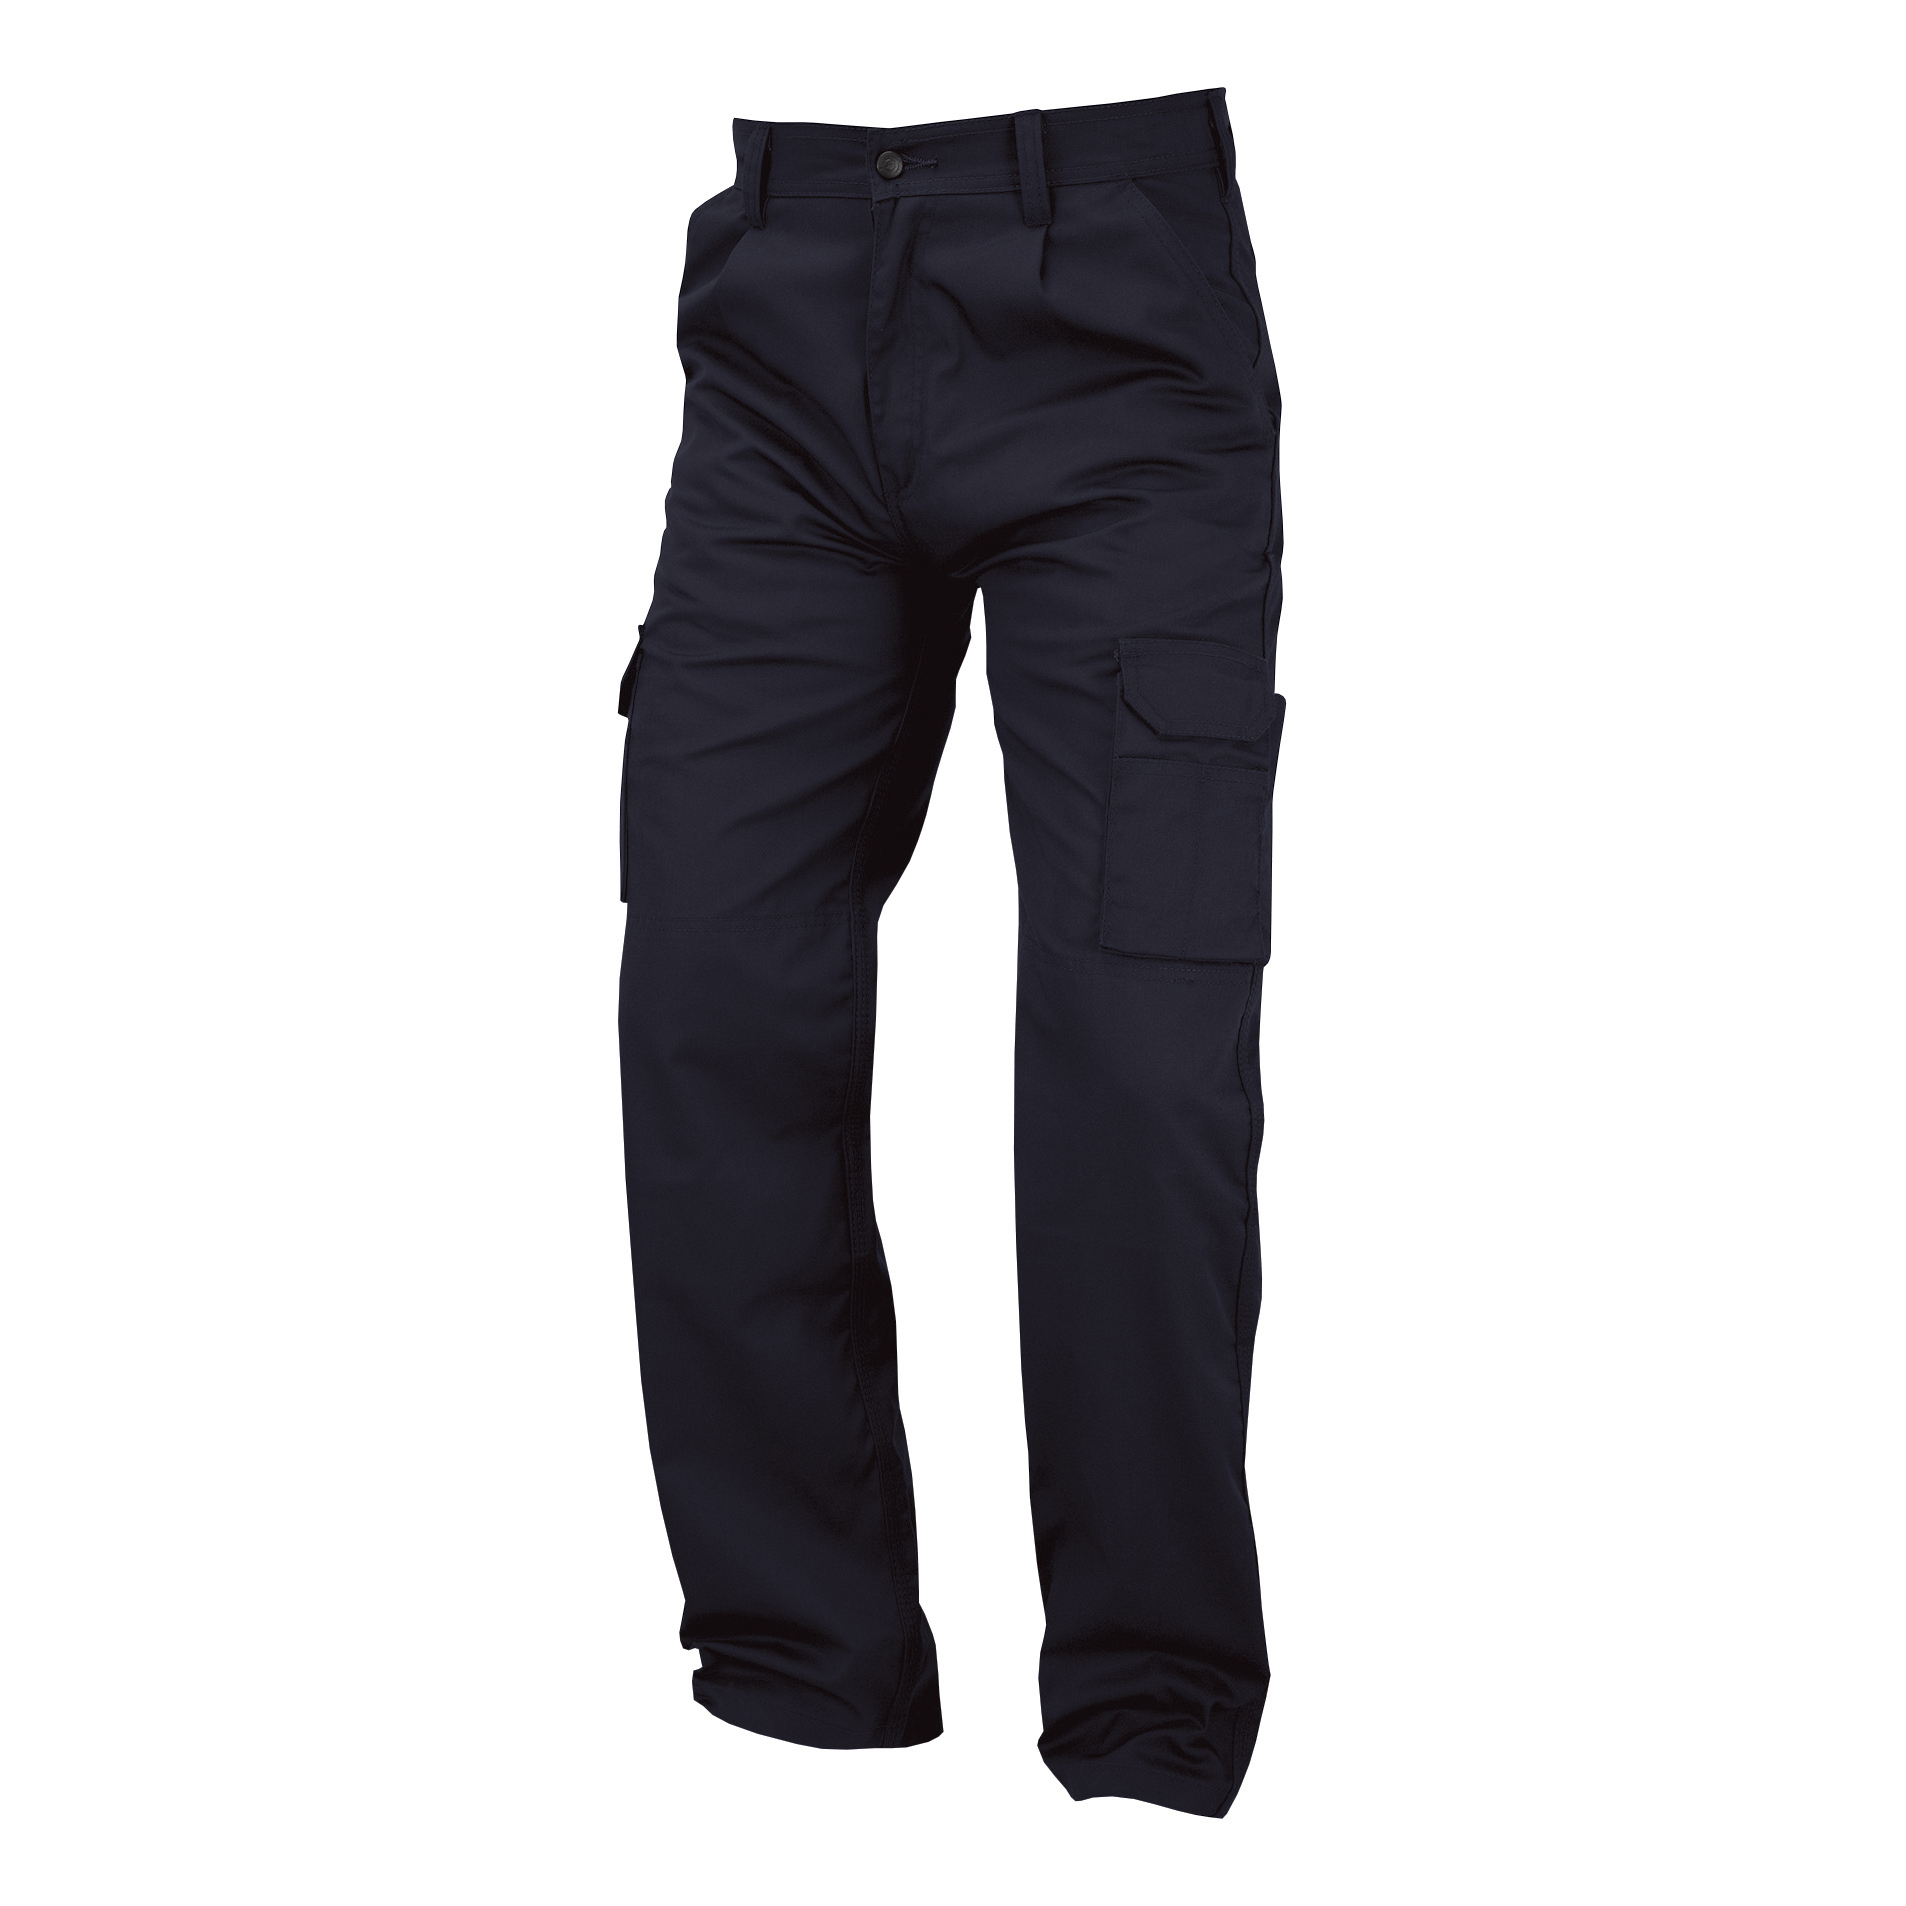 Combat Trousers Multifunctional 44in Long Navy Blue Ref PCTHWN44T *Approx 3 Day Leadtime*